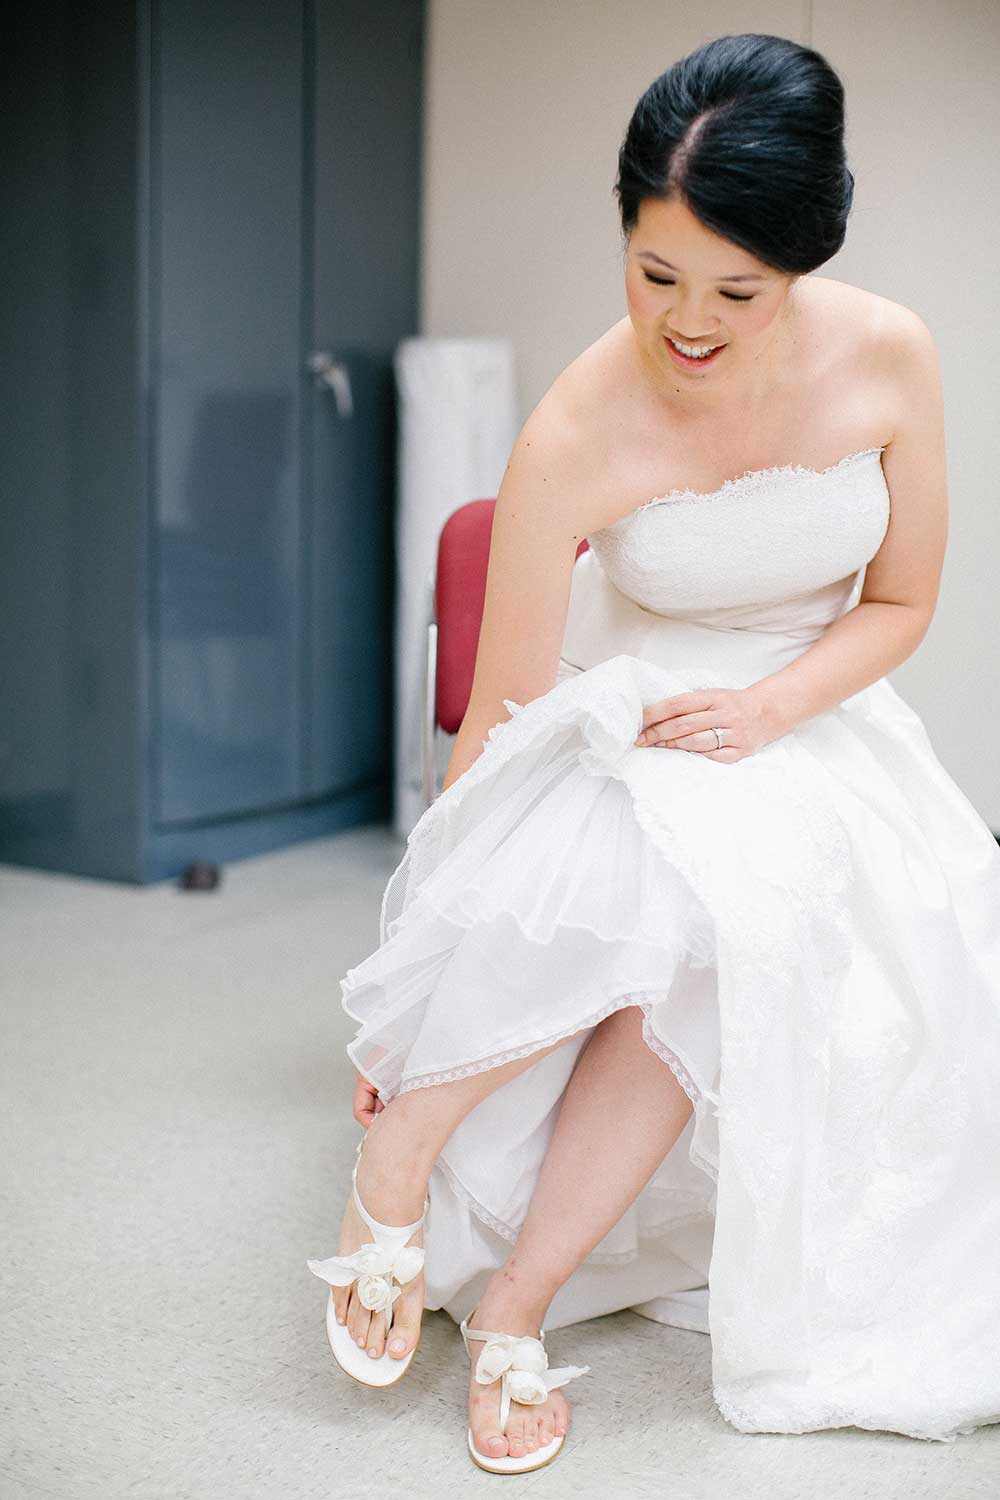 The Bride Putting On Her Shoes In A White Strapless Satin Wedding